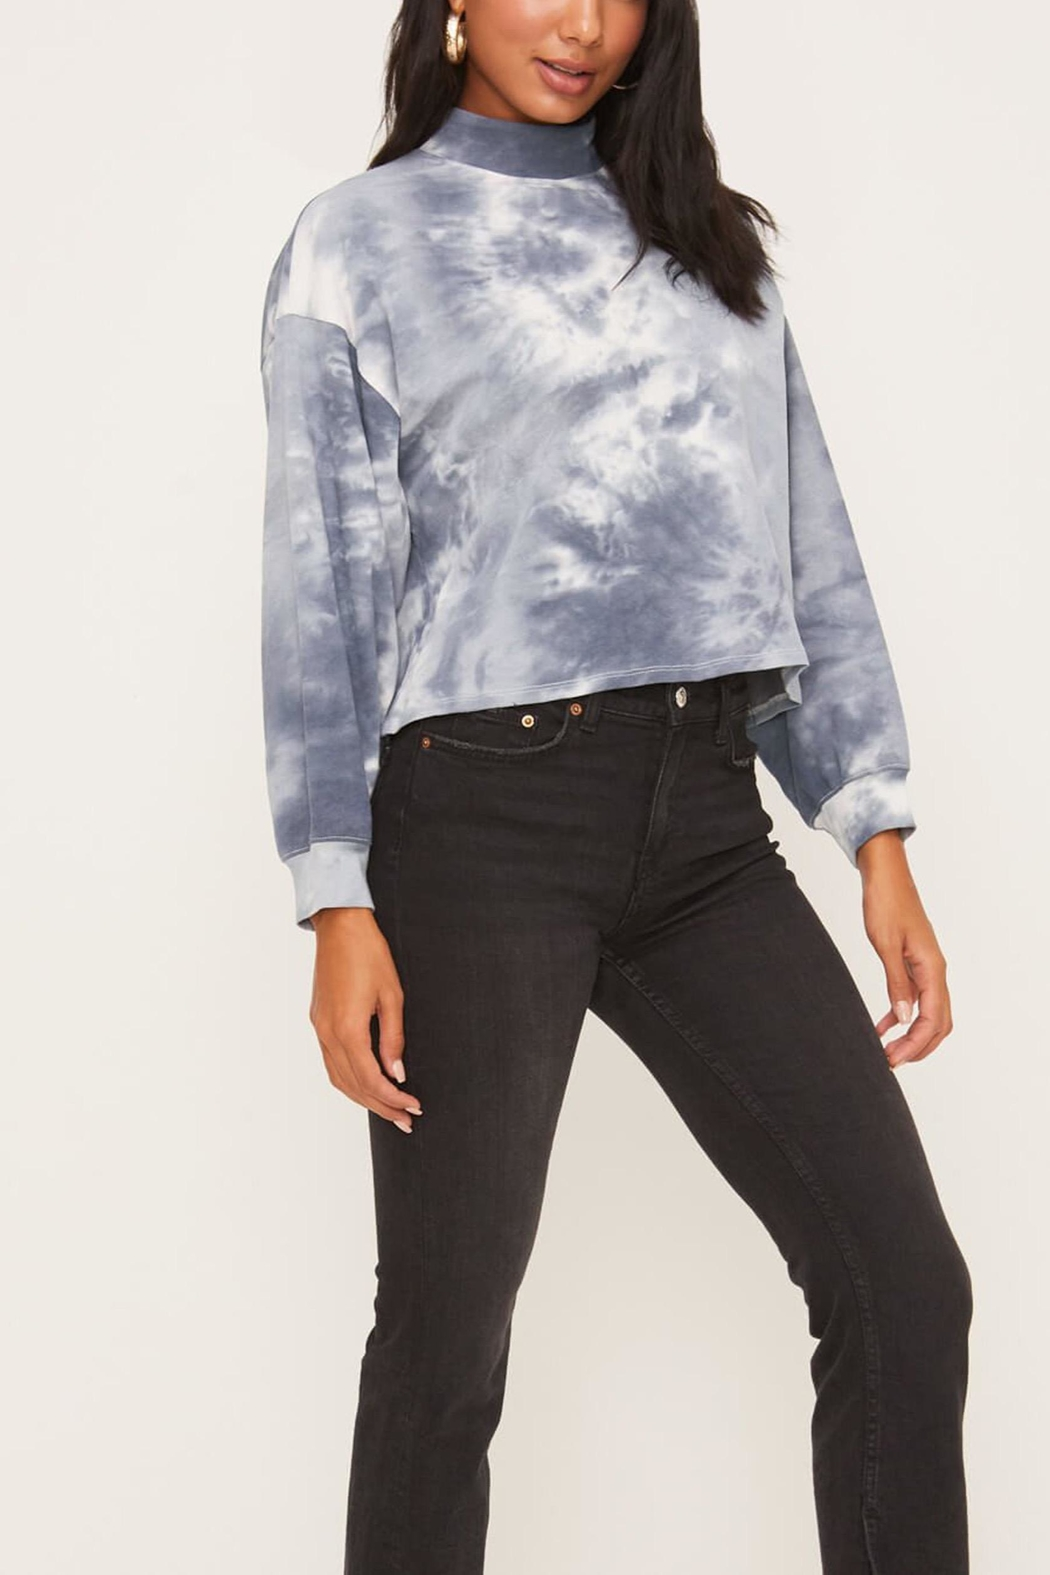 Lush Clothing  Blue Tie-Dye Top - Side Cropped Image